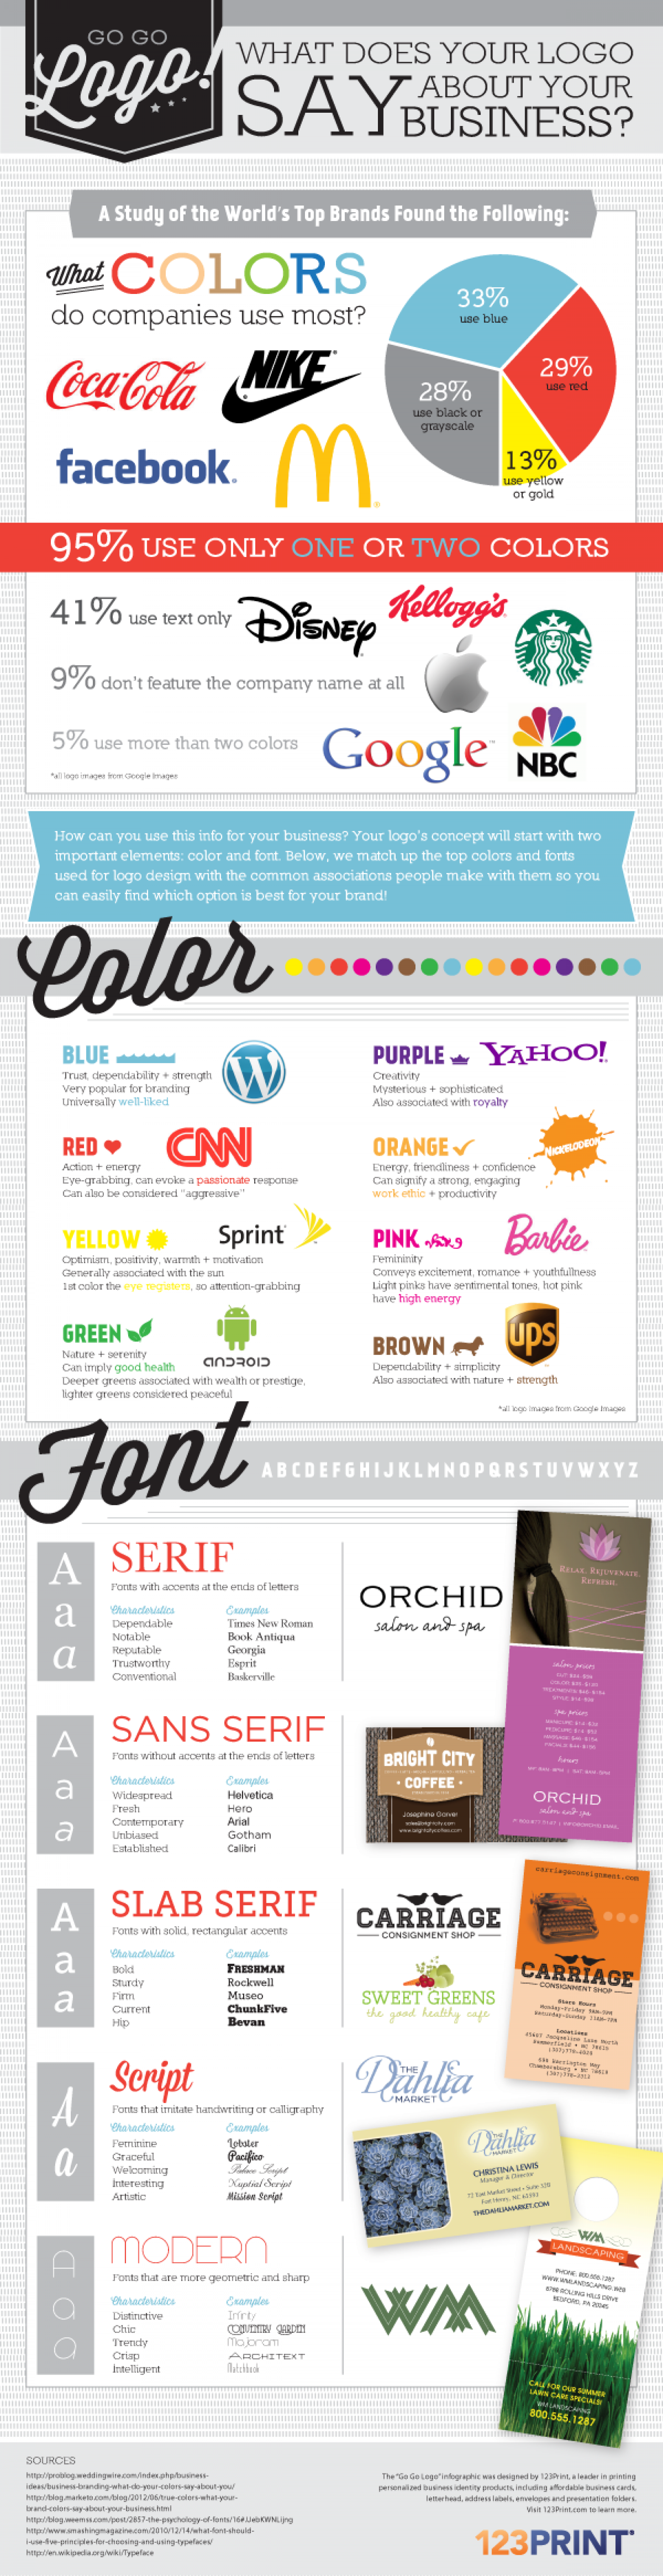 What Does Your Logo Say About Your Business? Infographic